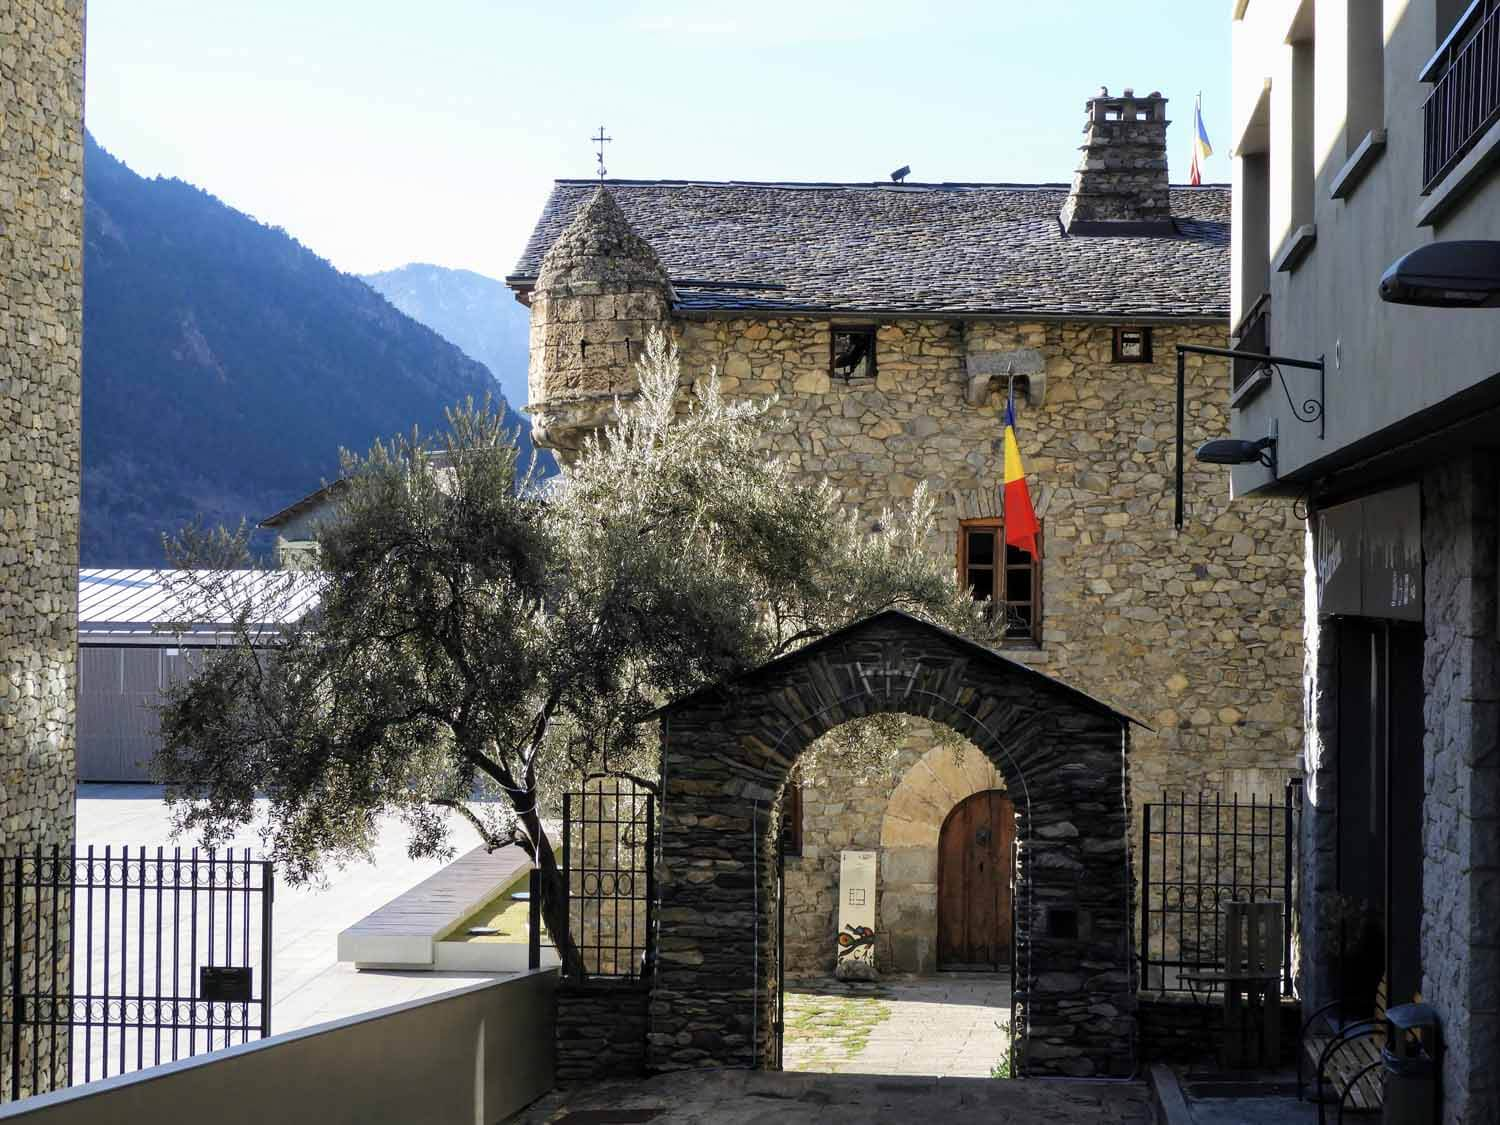 andorra-micro-nation-casa-vall-vella-tour-capital-governement-parliment.jpg